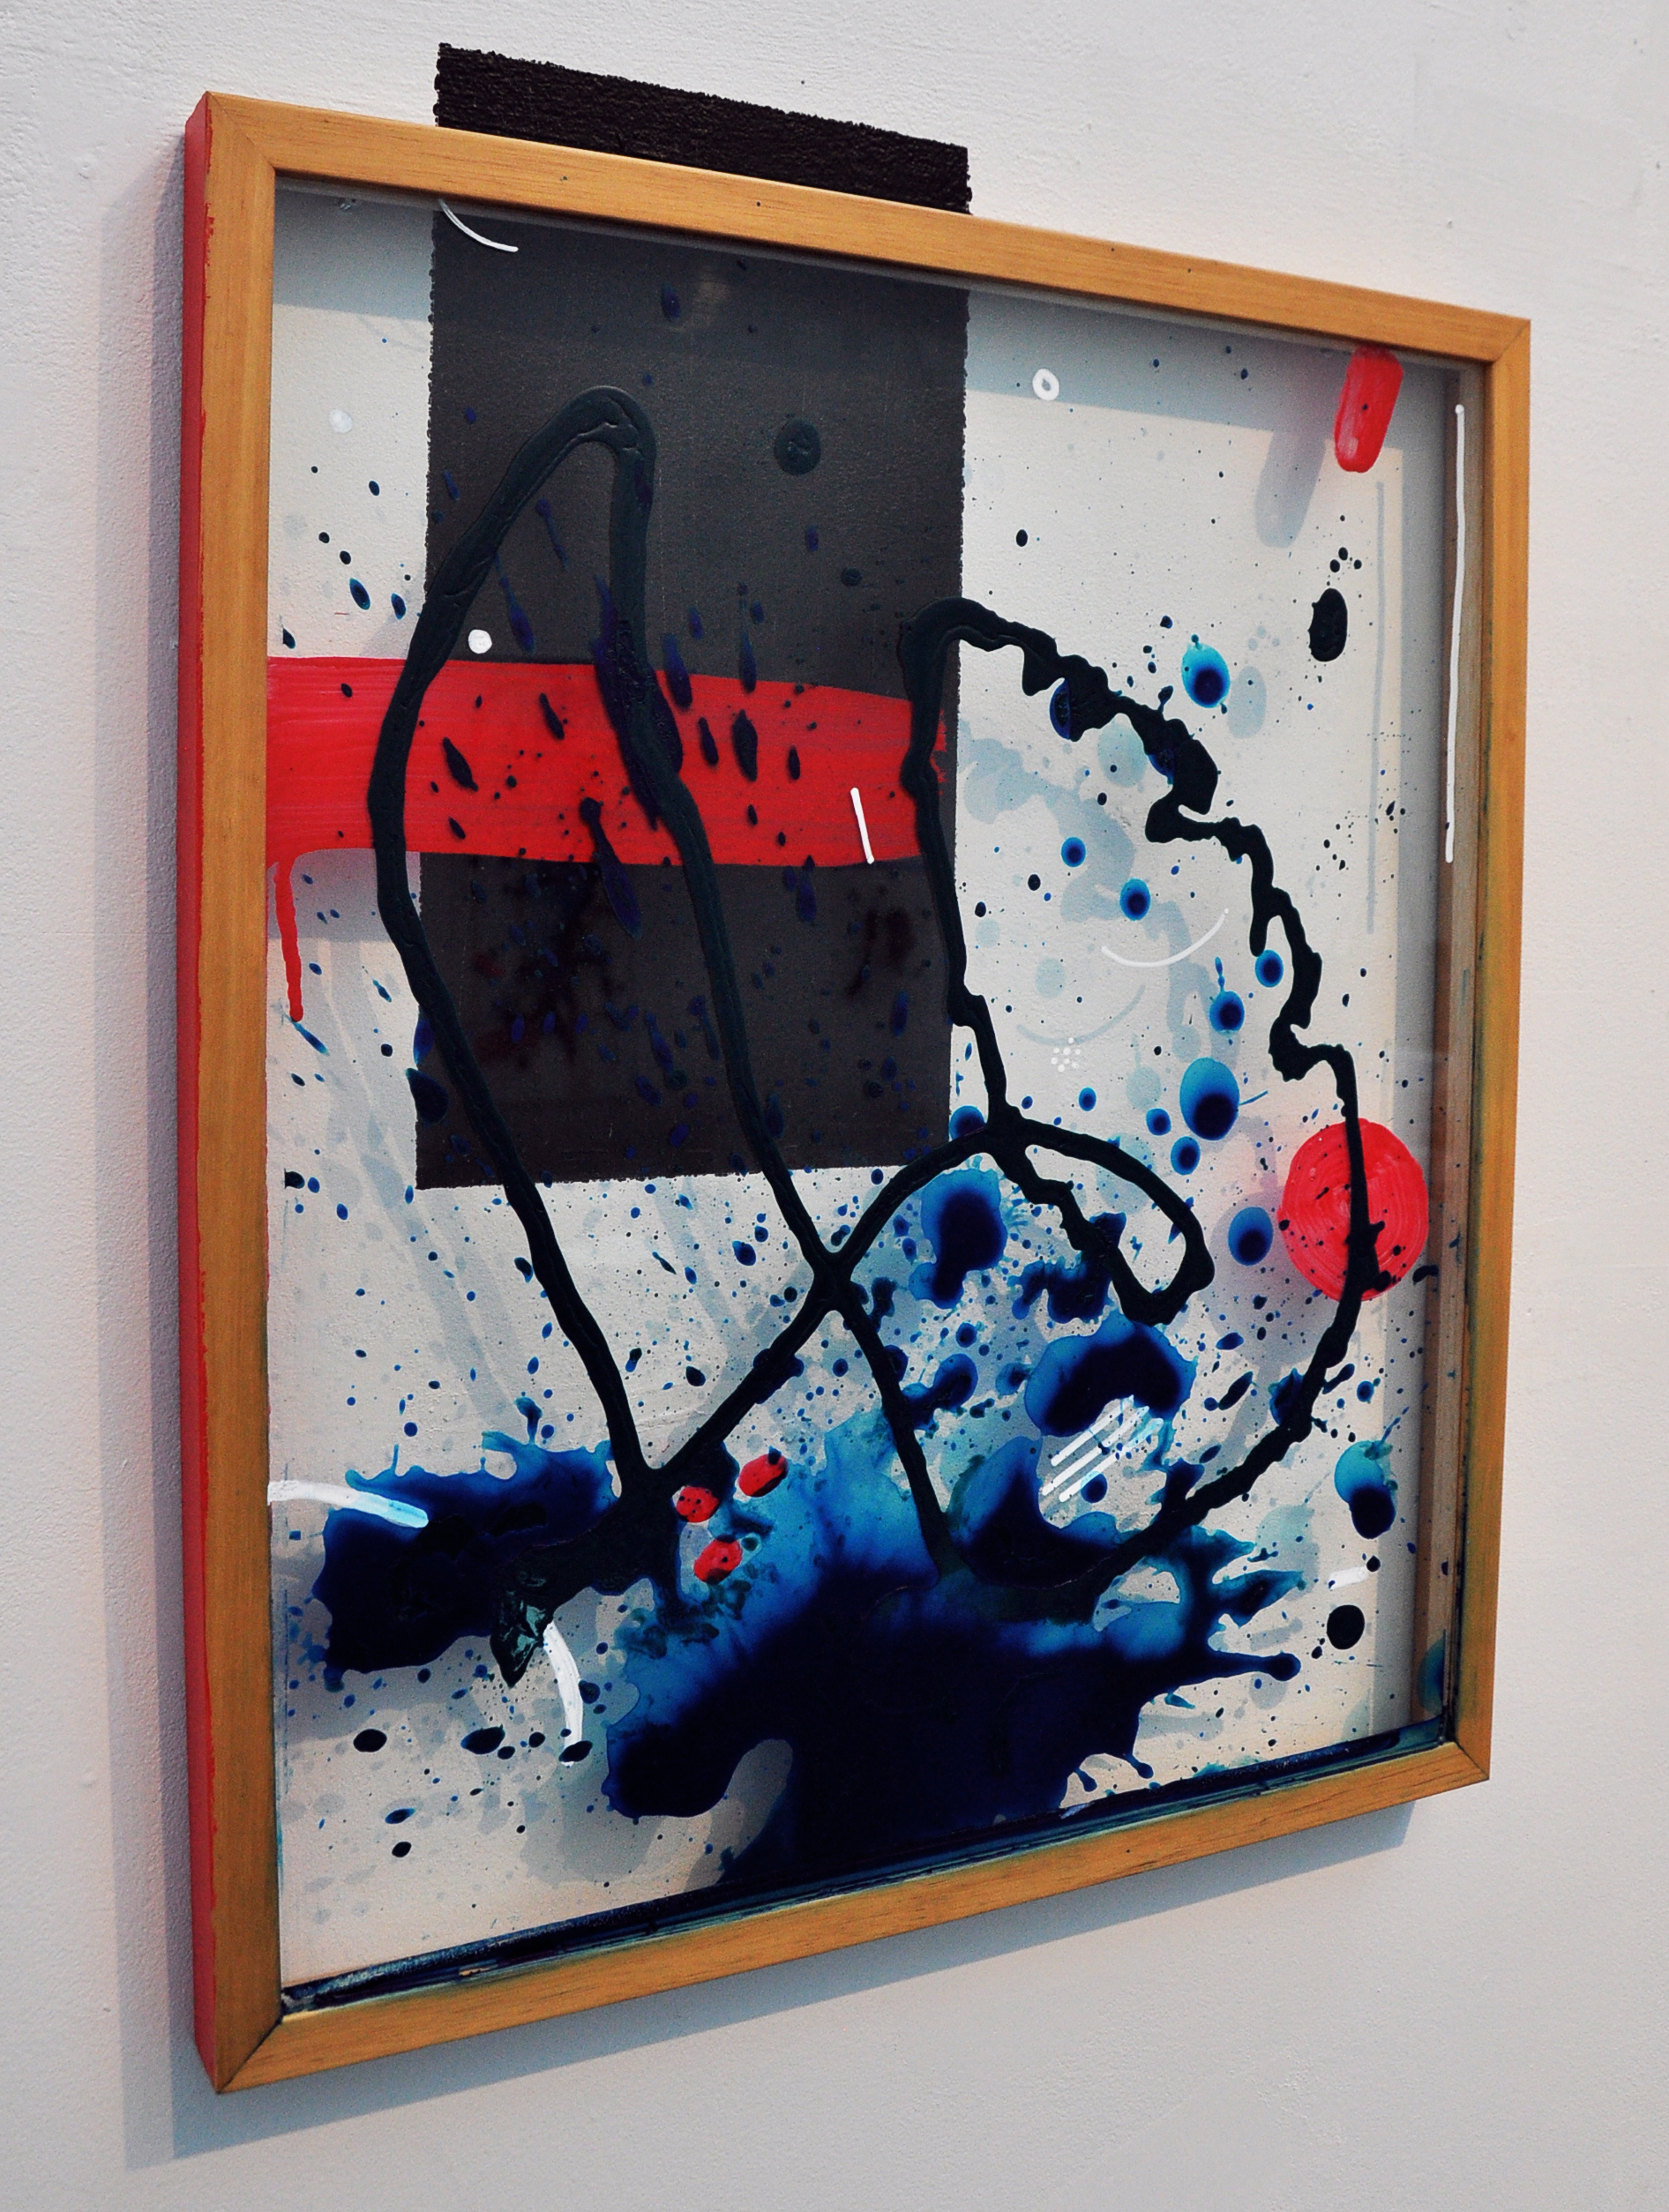 Sonia louise davis sound gestures international studio sonia louise davis untitled 2018 acrylic on found frame with wall painting 24 36 in 6096 9144 cm jeuxipadfo Images